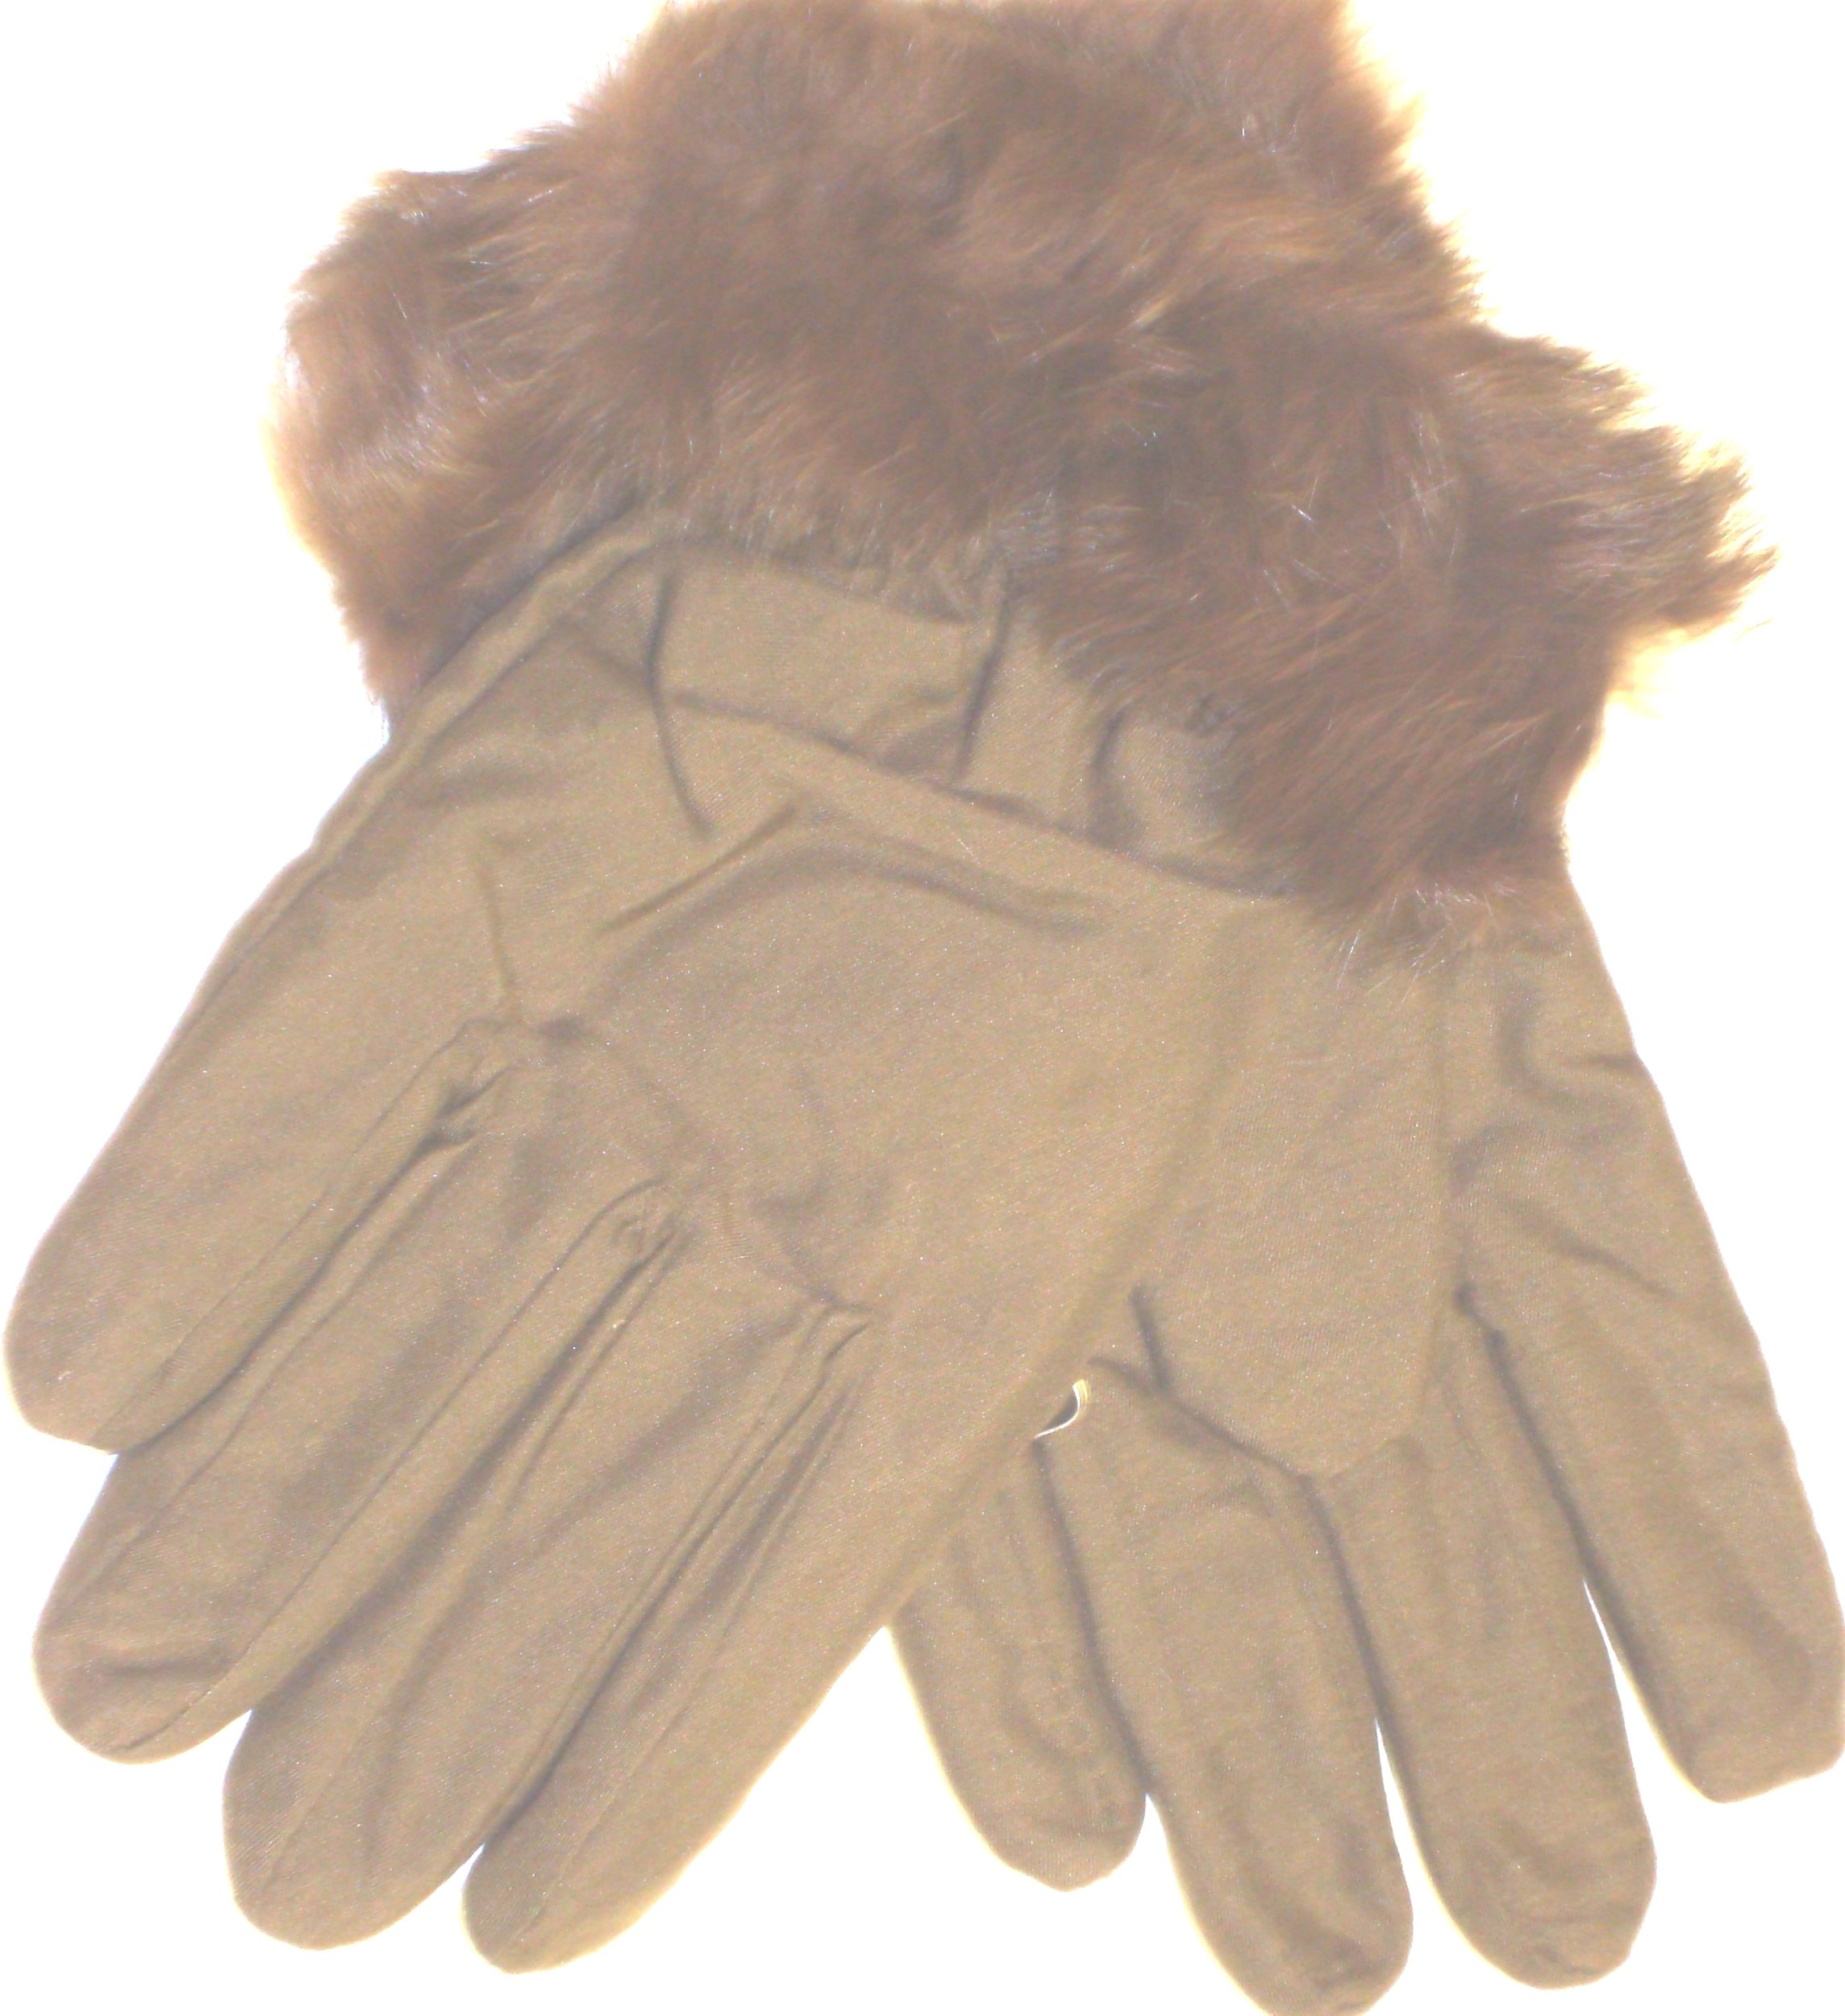 Dypel High Tech Waterproof Microfiber Lined Light Brown Color Luxurious Looking Ski Gloves Hand Trimmed with Fine Rabbit Fur for Women and Teens (Med/Large) *